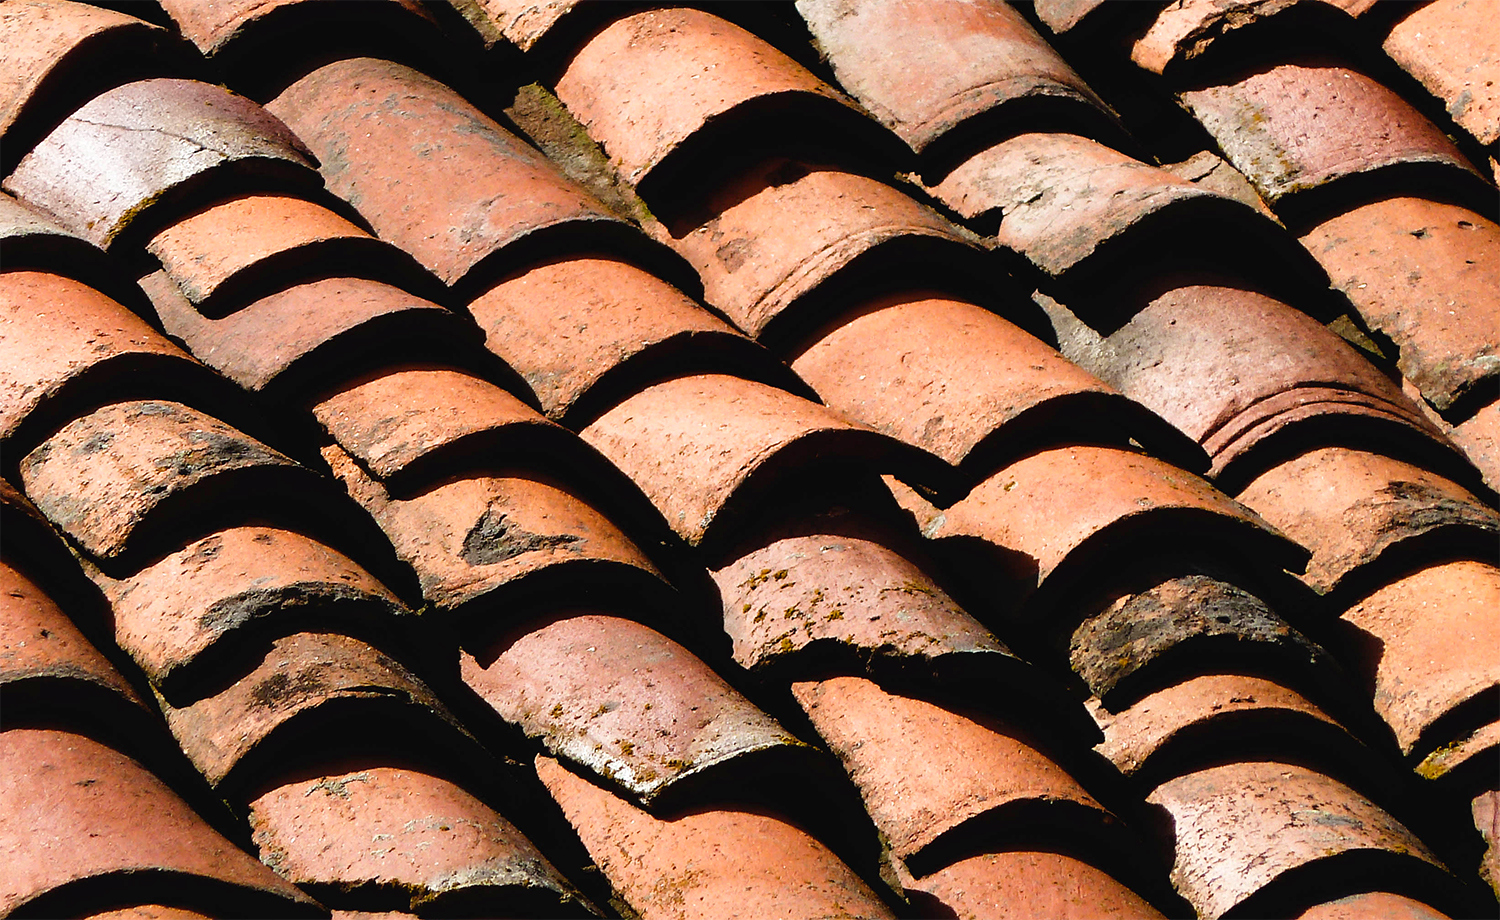 <p>Clay roof tiles on a farm house that likely date from the Ottoman period. They've seen many scorching summers and freezing winters.<br /></p>